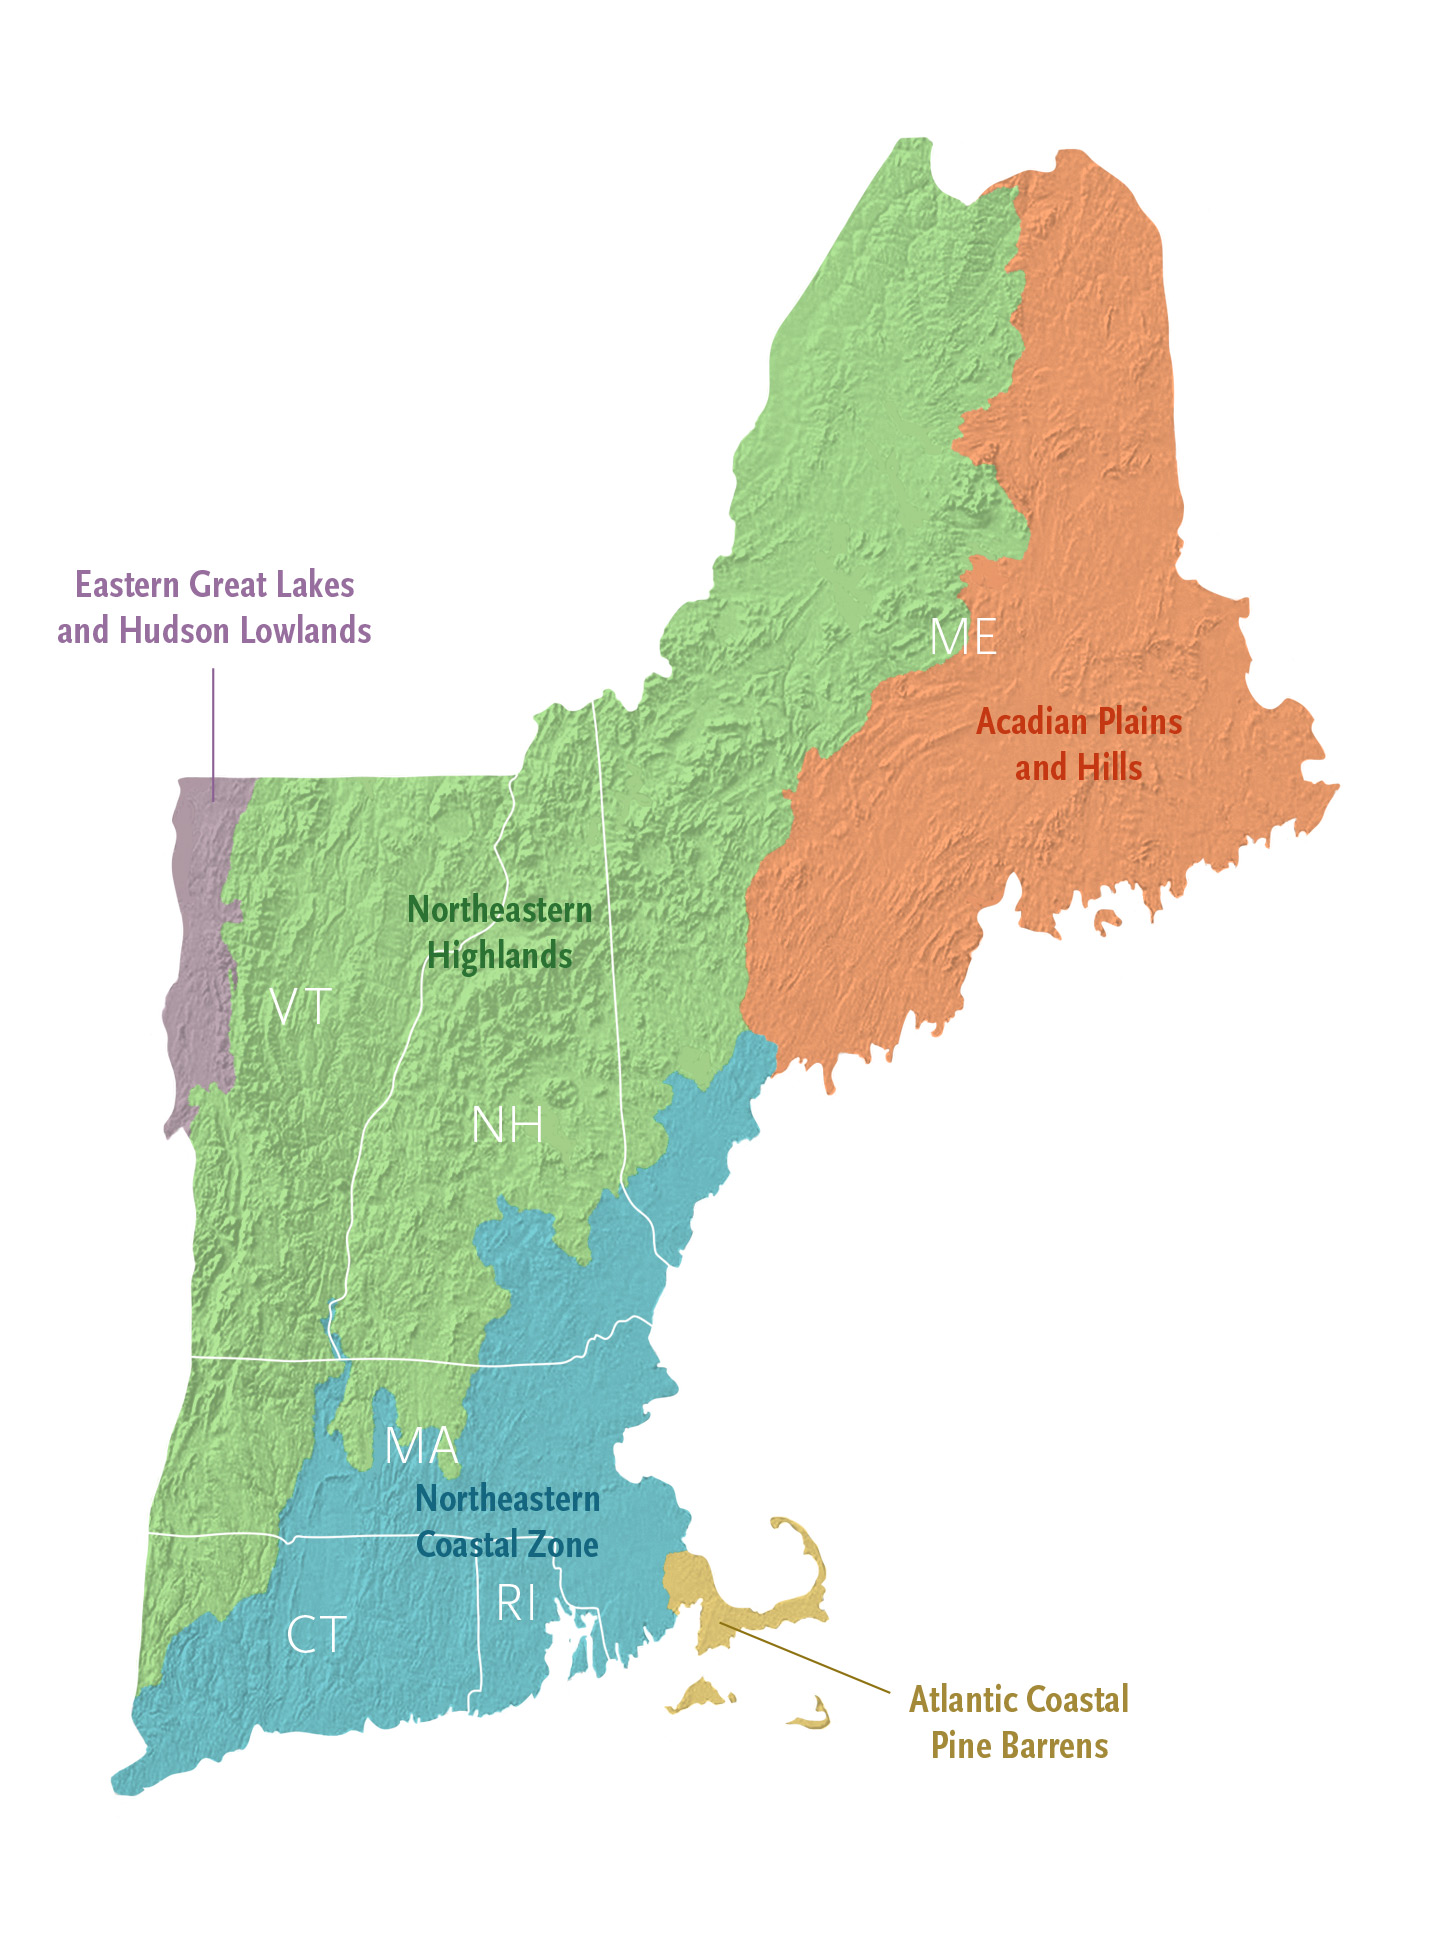 EPA_EcoRegions_v3_150305_FINAL_withLabels.jpg